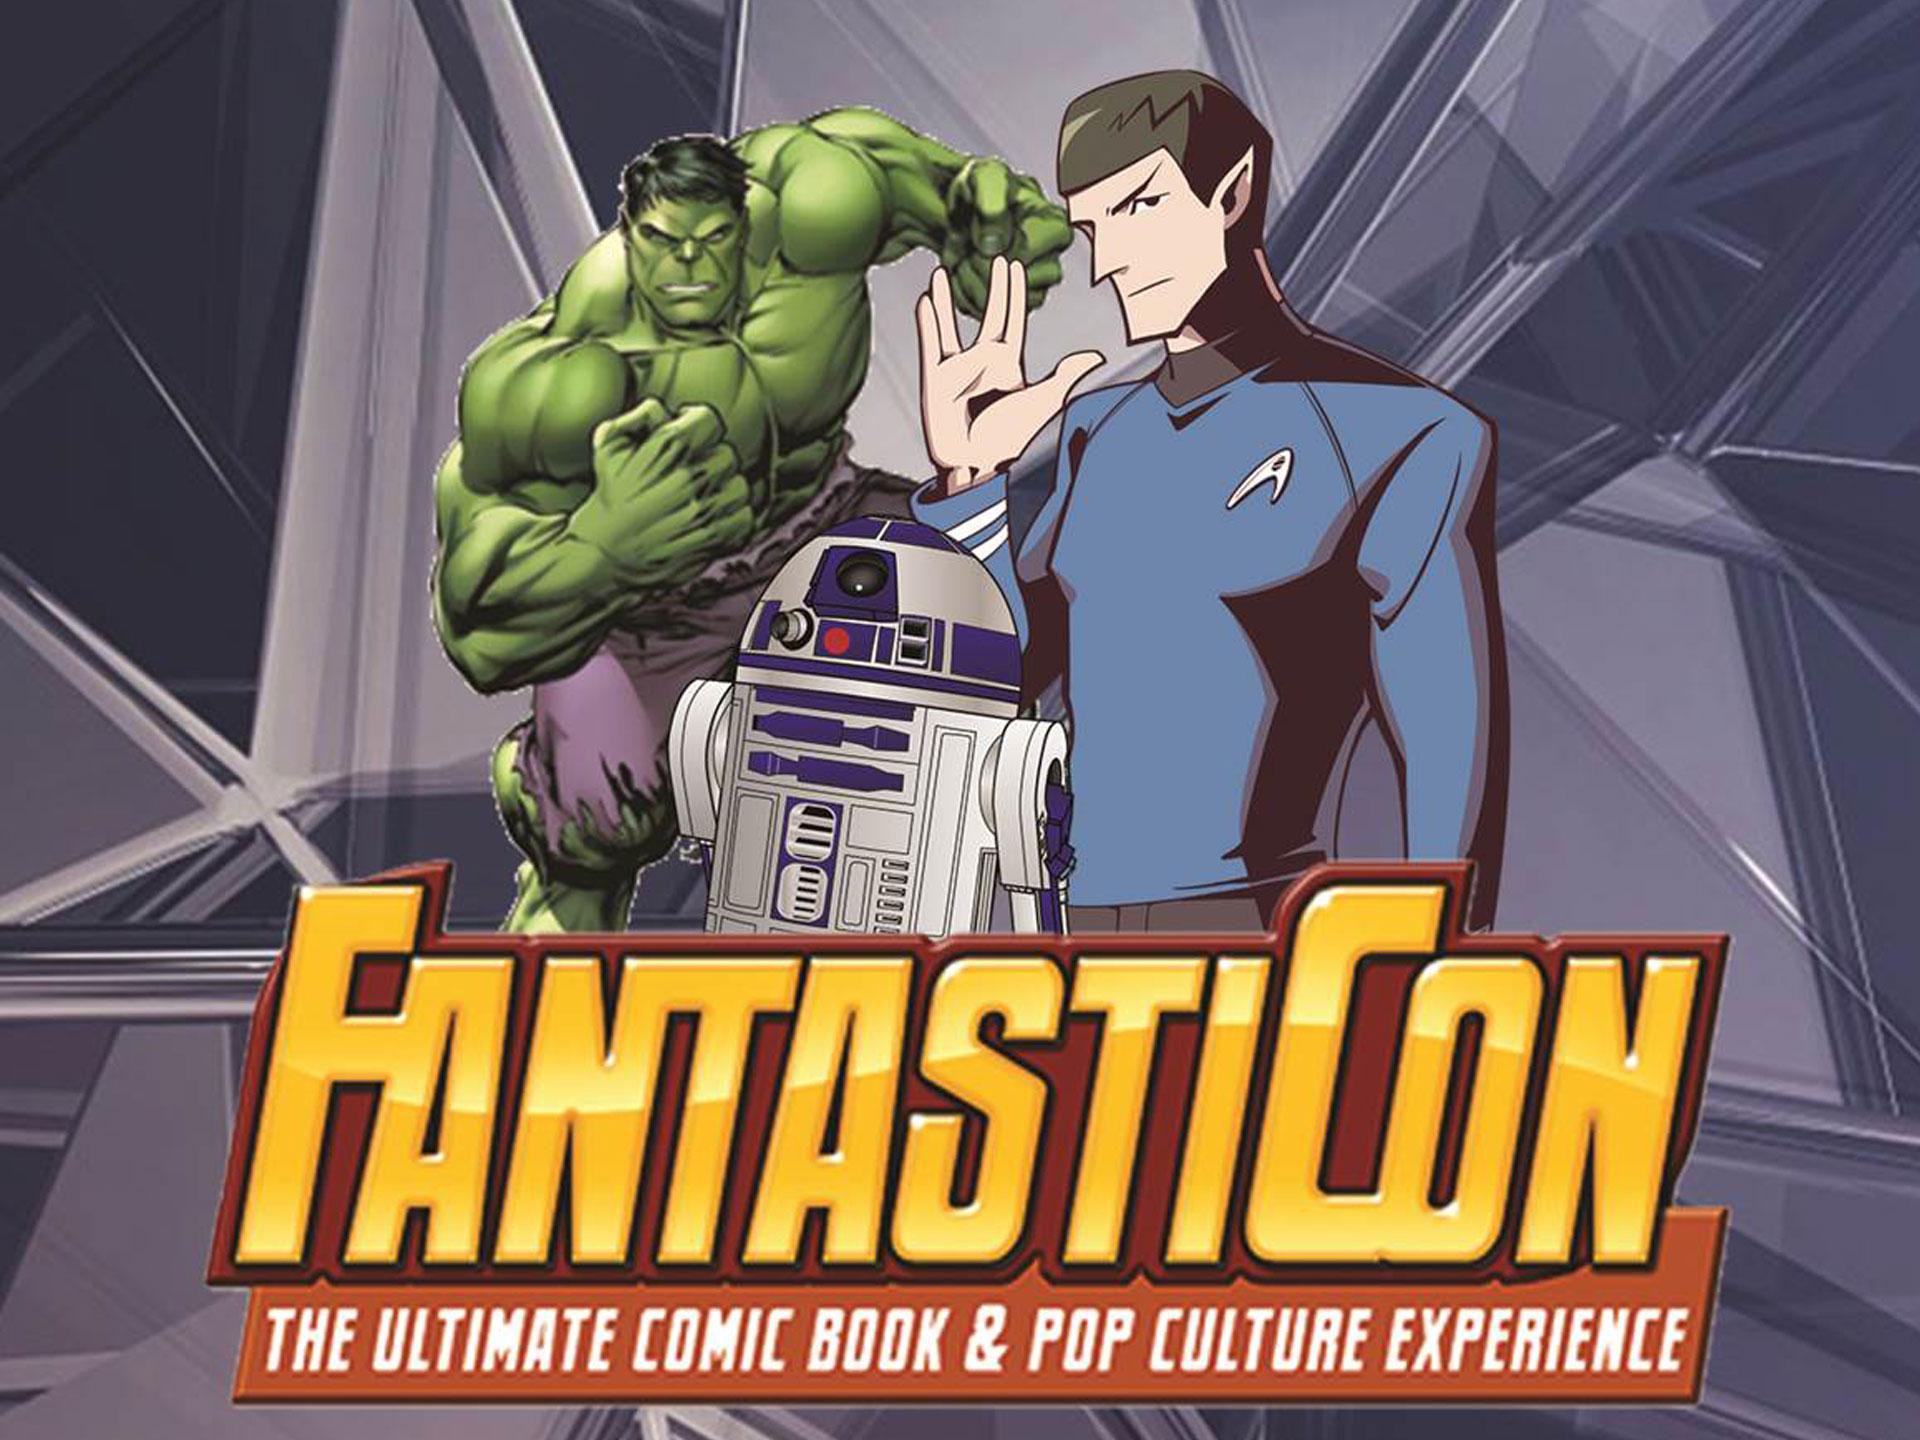 Image for FANTASTICON S7-EP22 - October 19-20, 2019 - 2 DAY PASS